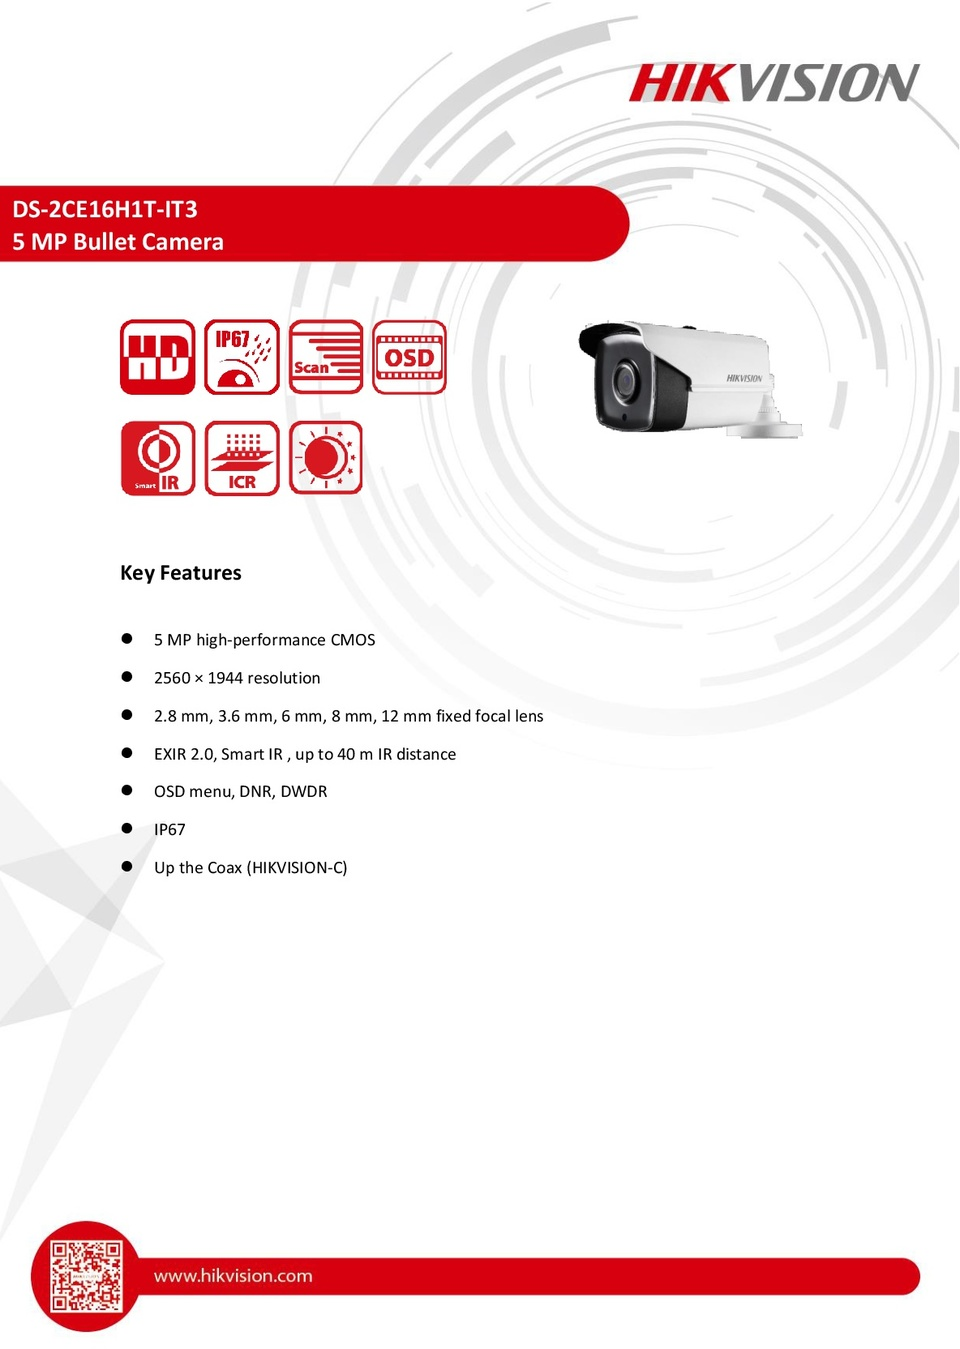 Hikvision DS-2CE16H1T-IT3 5MP HD-TVI Bullet Camera With 2.8mm Lens 0